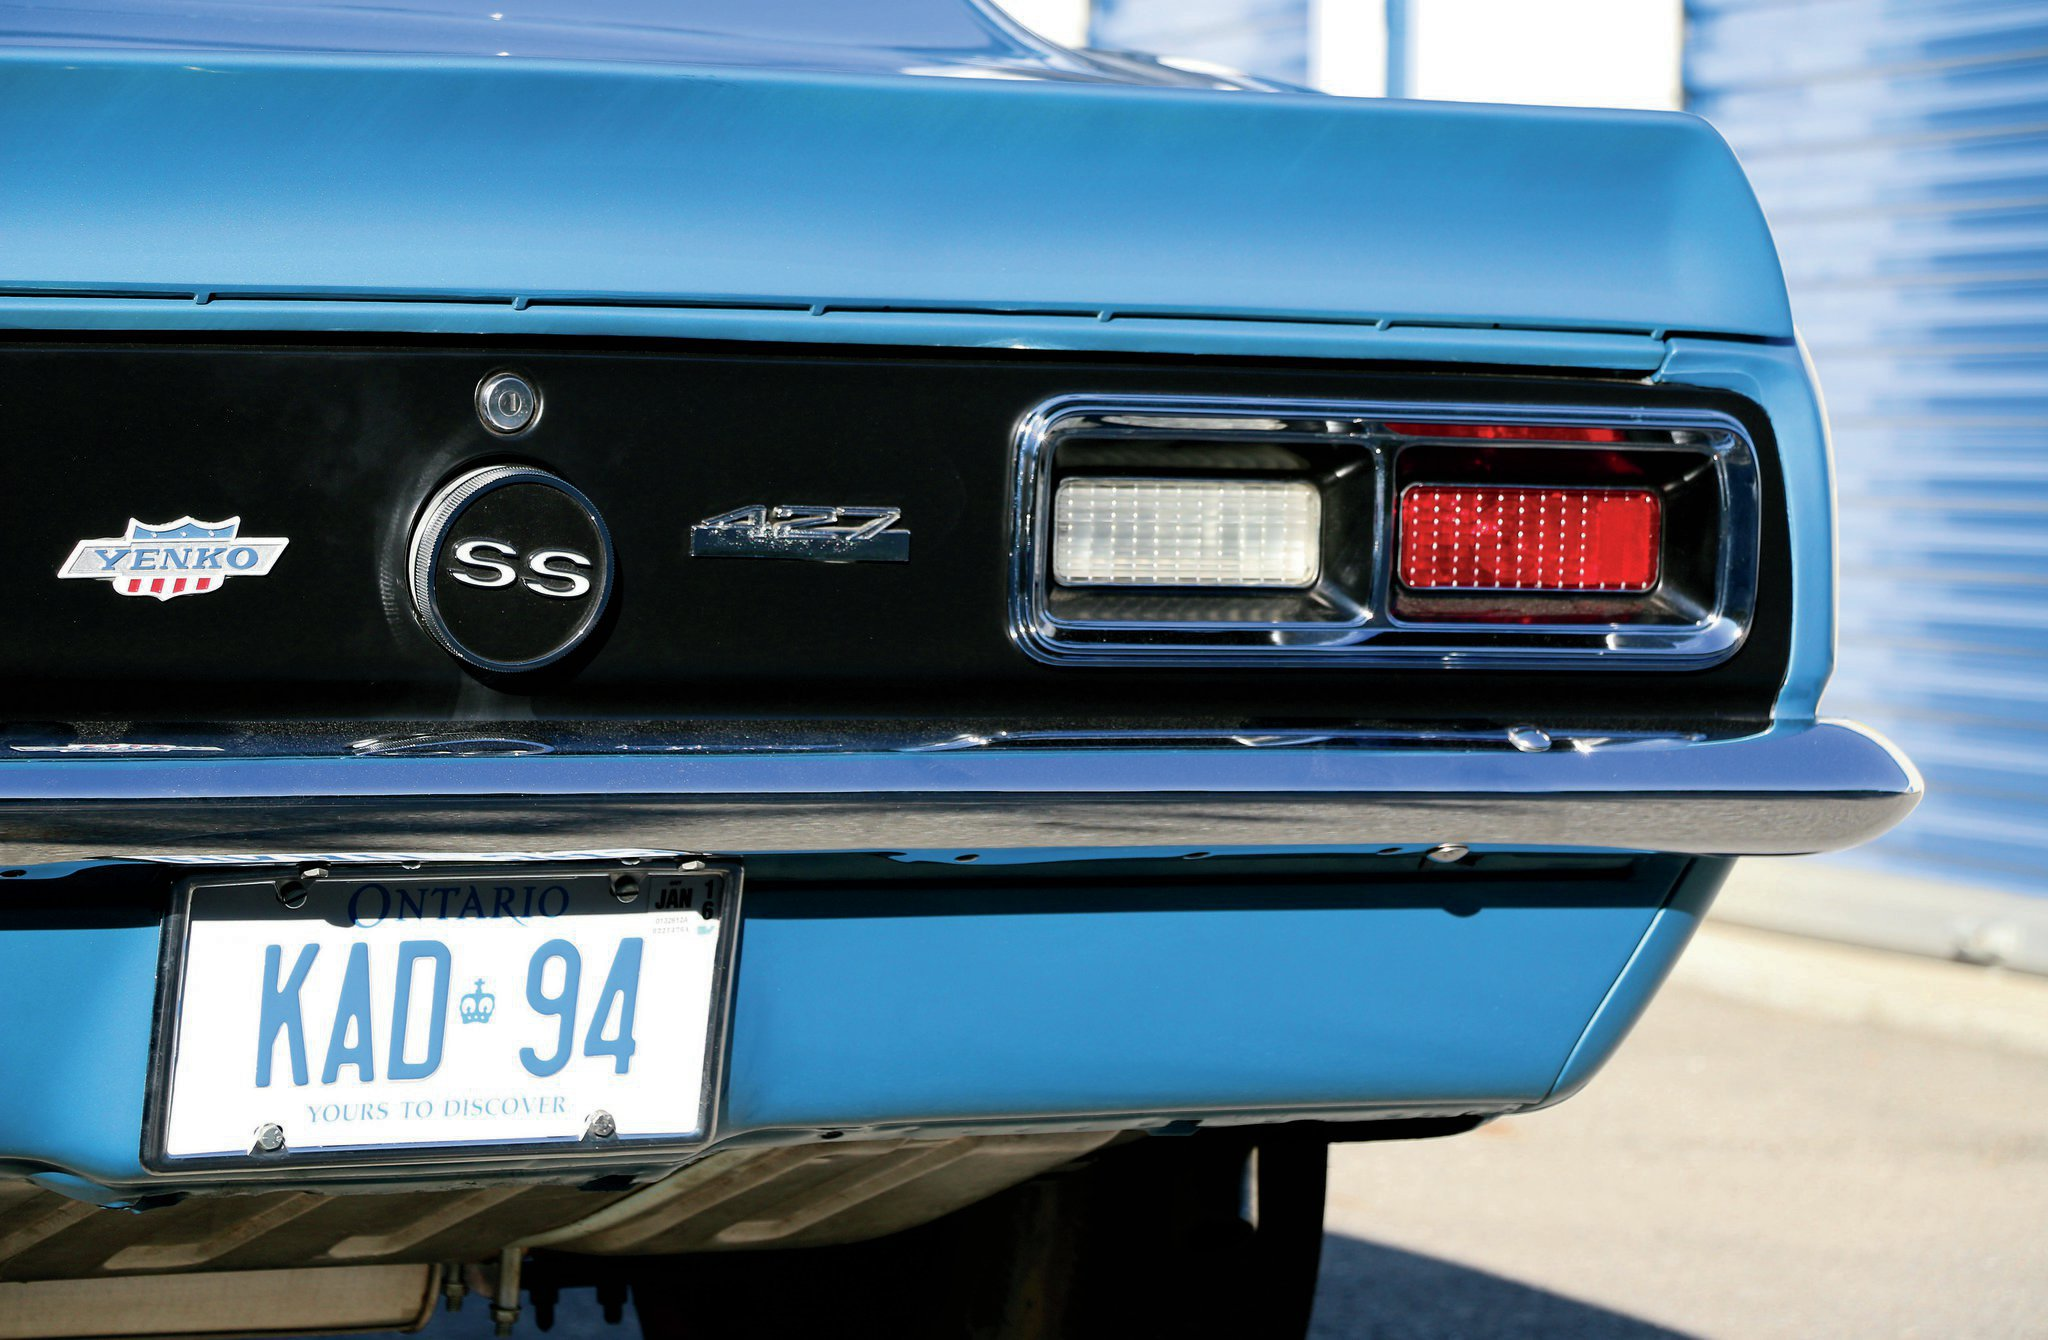 The factory blacked-out rear cove area was the perfect canvas for the Yenko and 427 emblems.